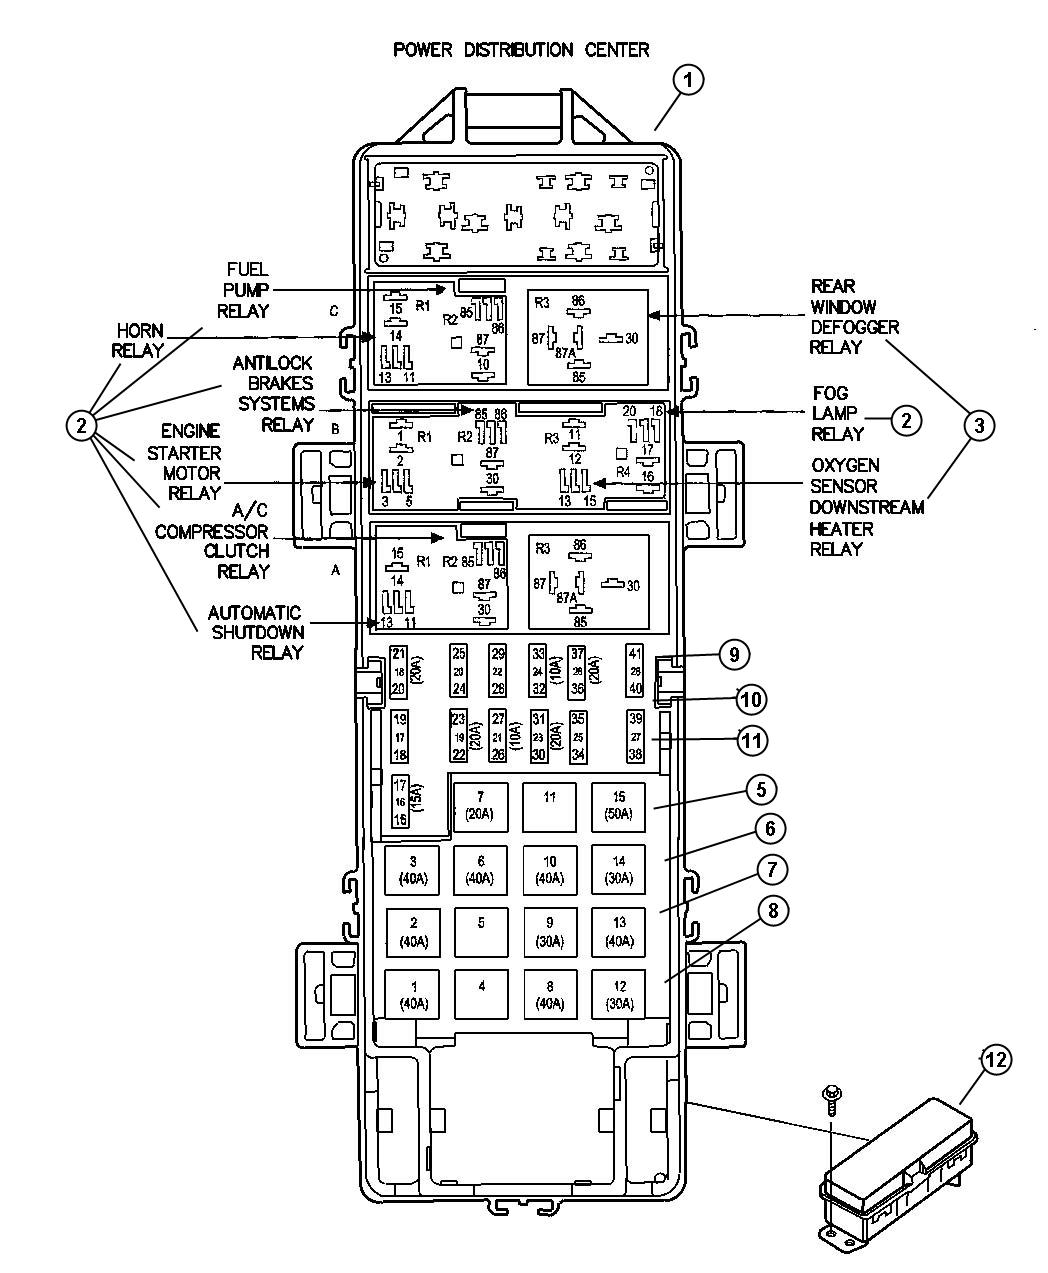 95 Cherokee Fuse Box Diagram